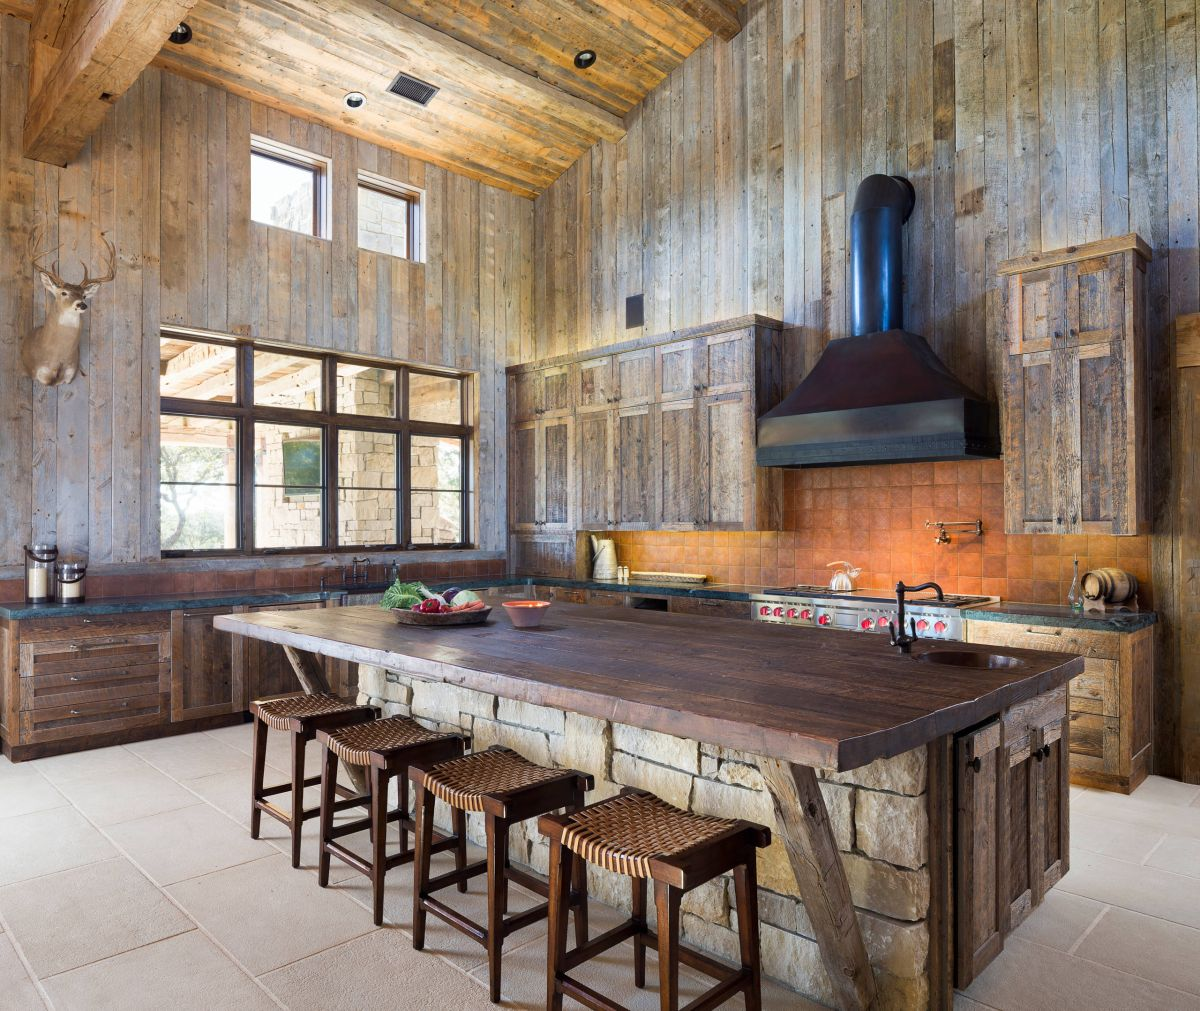 32 Simple Rustic Homemade Kitchen Islands: 15 Rustic Kitchen Islands Perfect For Any Kitchen